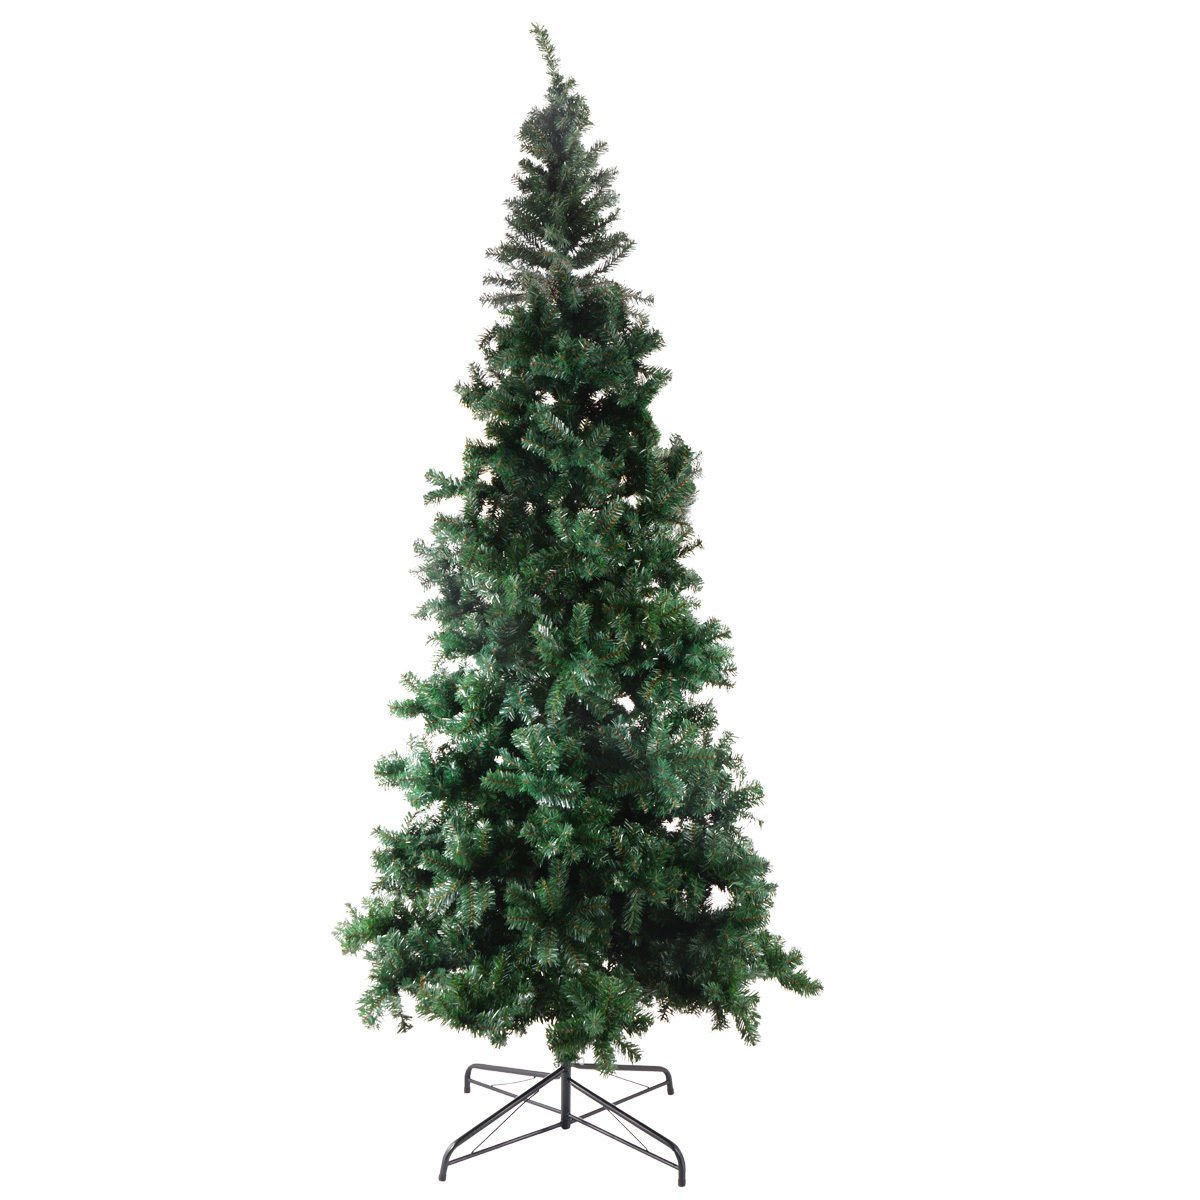 cbd9aa8f172 Get Quotations · Trees Feet Tall Christmas Tree Stand Holiday Season Indoor  Outdoor Green Artificial Christmas Trees Size 9.8